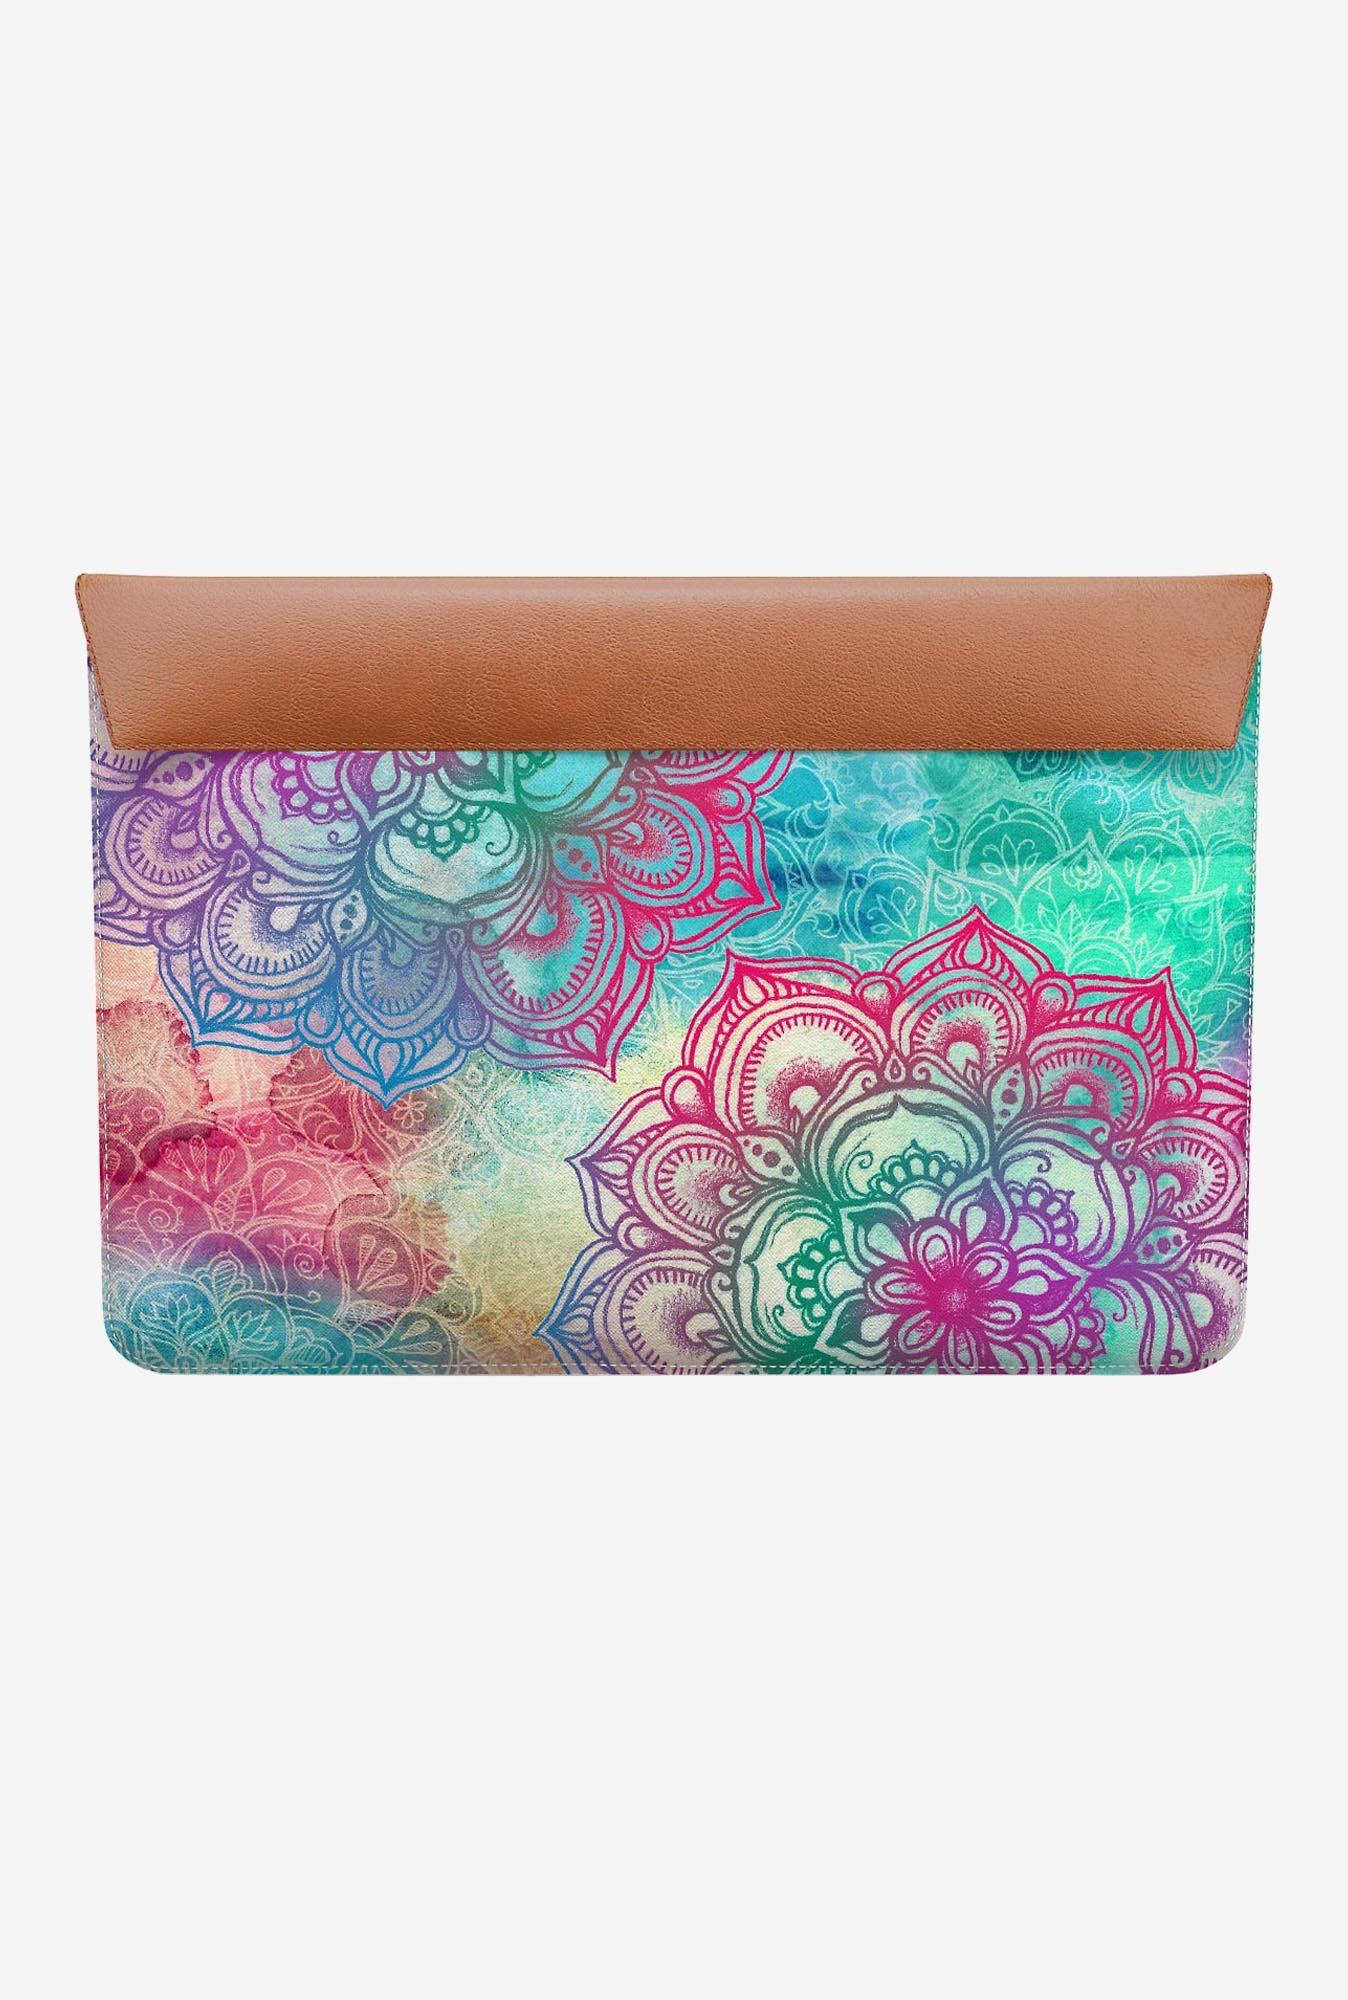 "DailyObjects Round And Round MacBook Pro 15"" Envelope Sleeve"